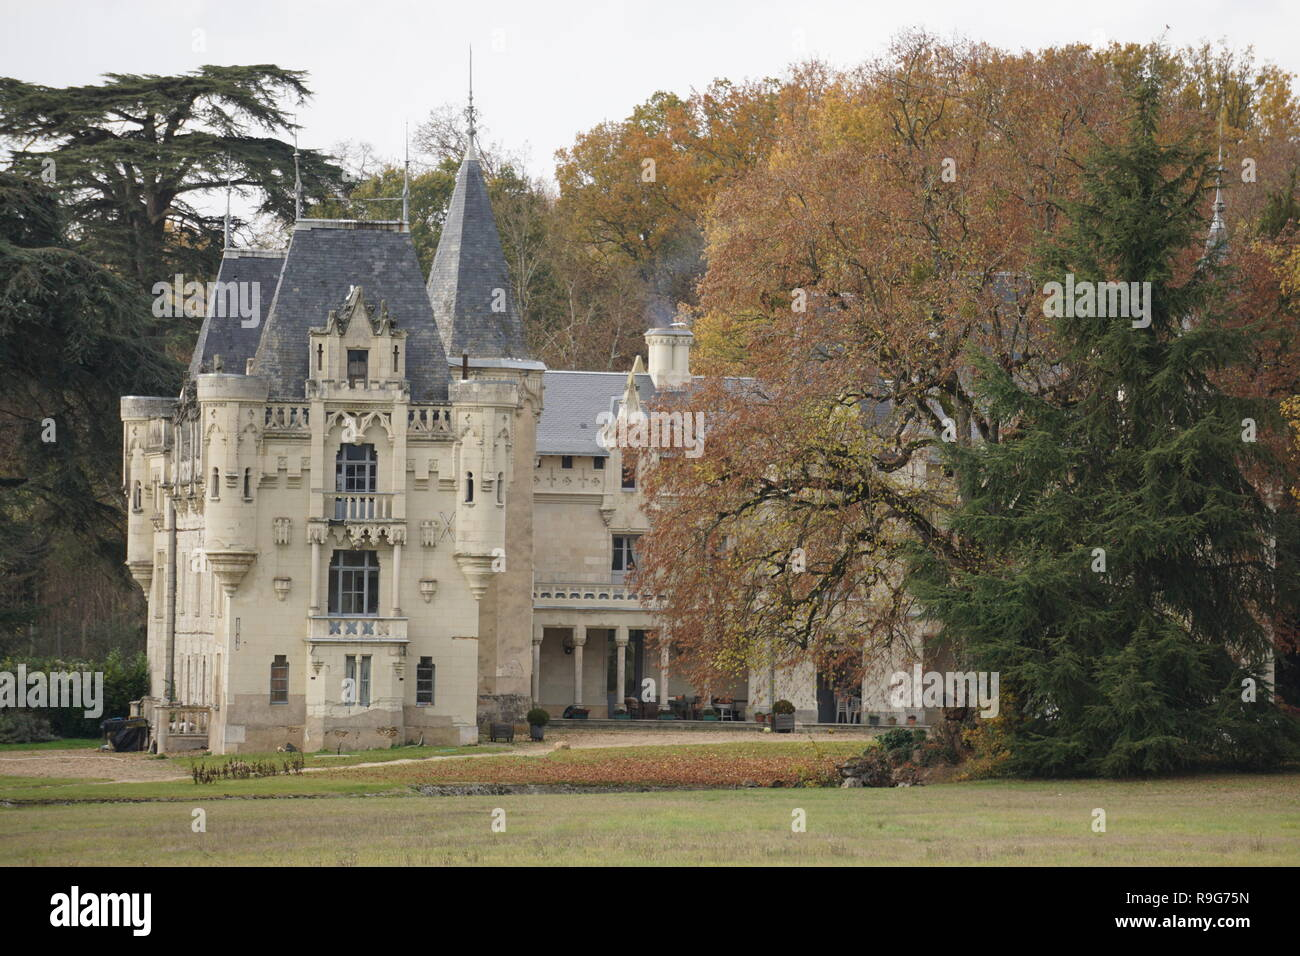 Beautiful remodeled old limestone castle in the park in the Loire Valley, France on a fall day Stock Photo